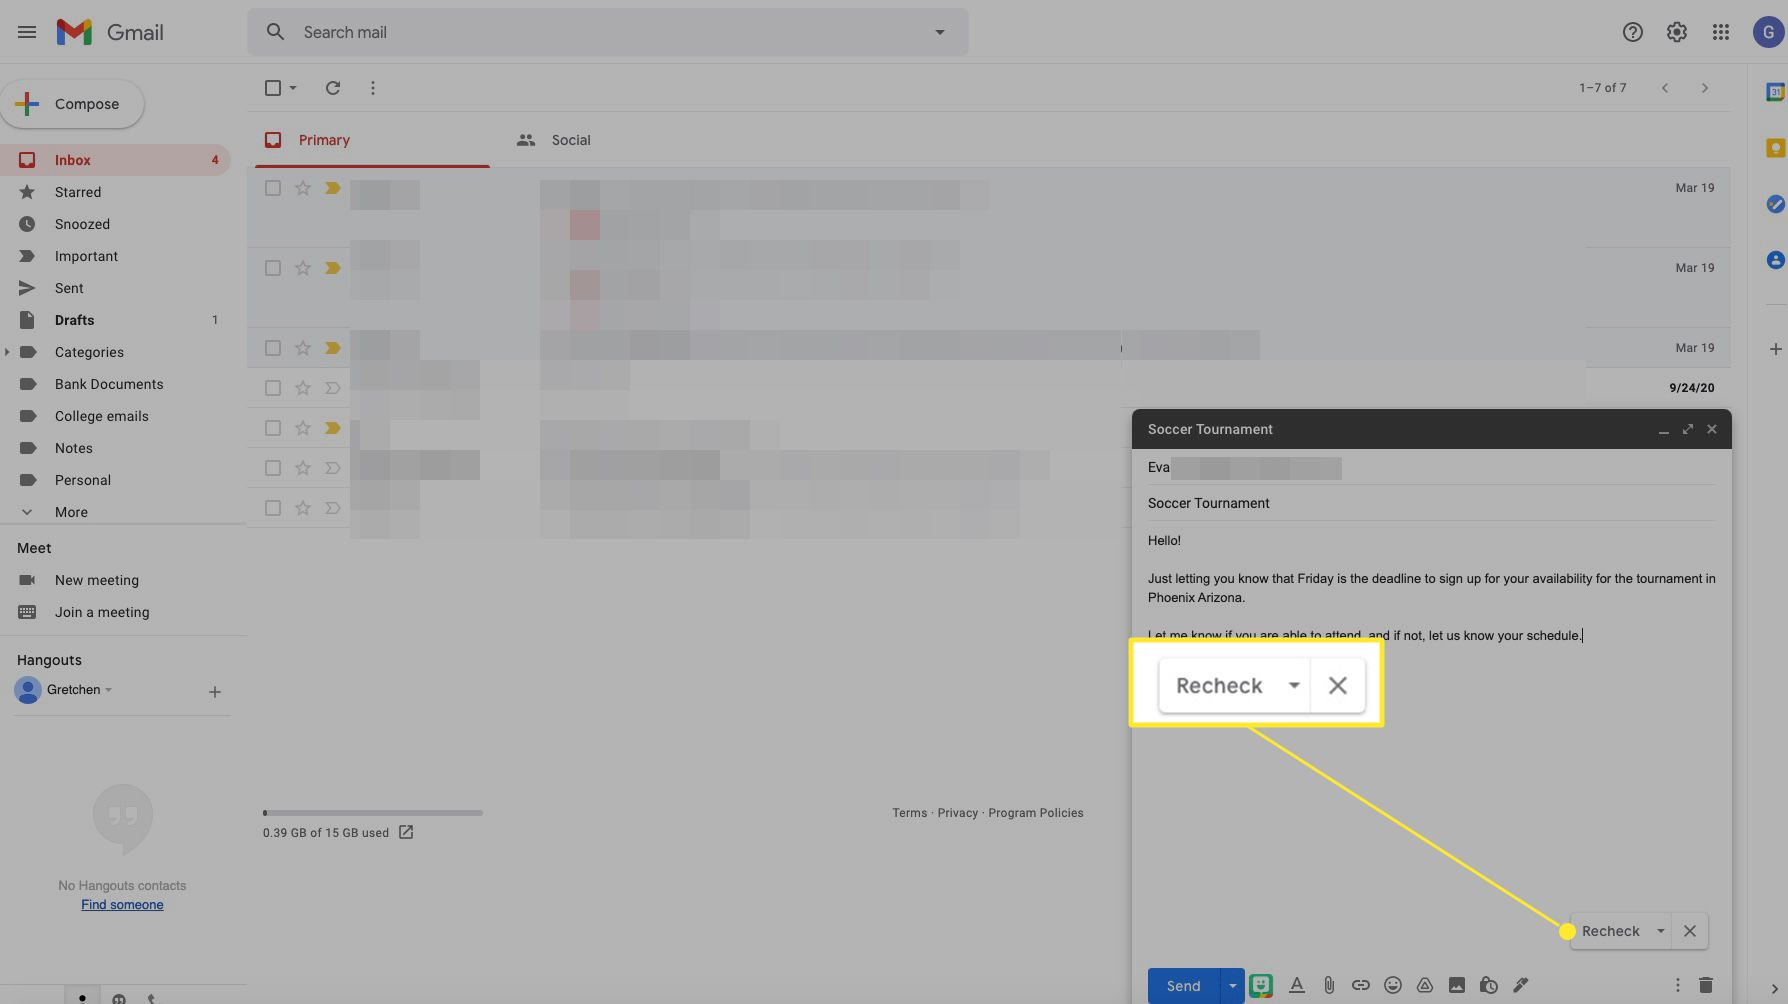 Gmail spell check options with Recheck highlighted